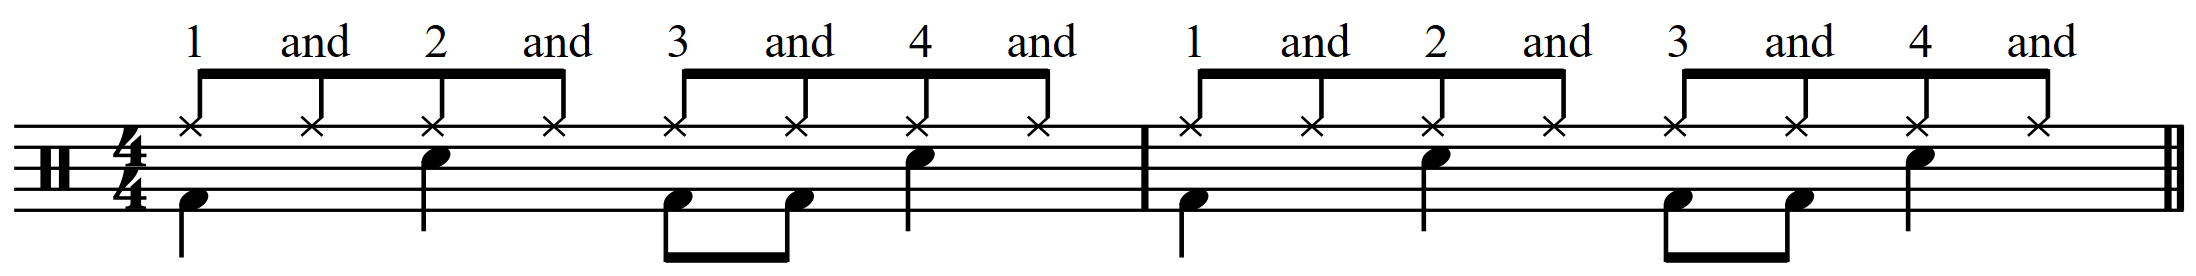 Drum Set Notation